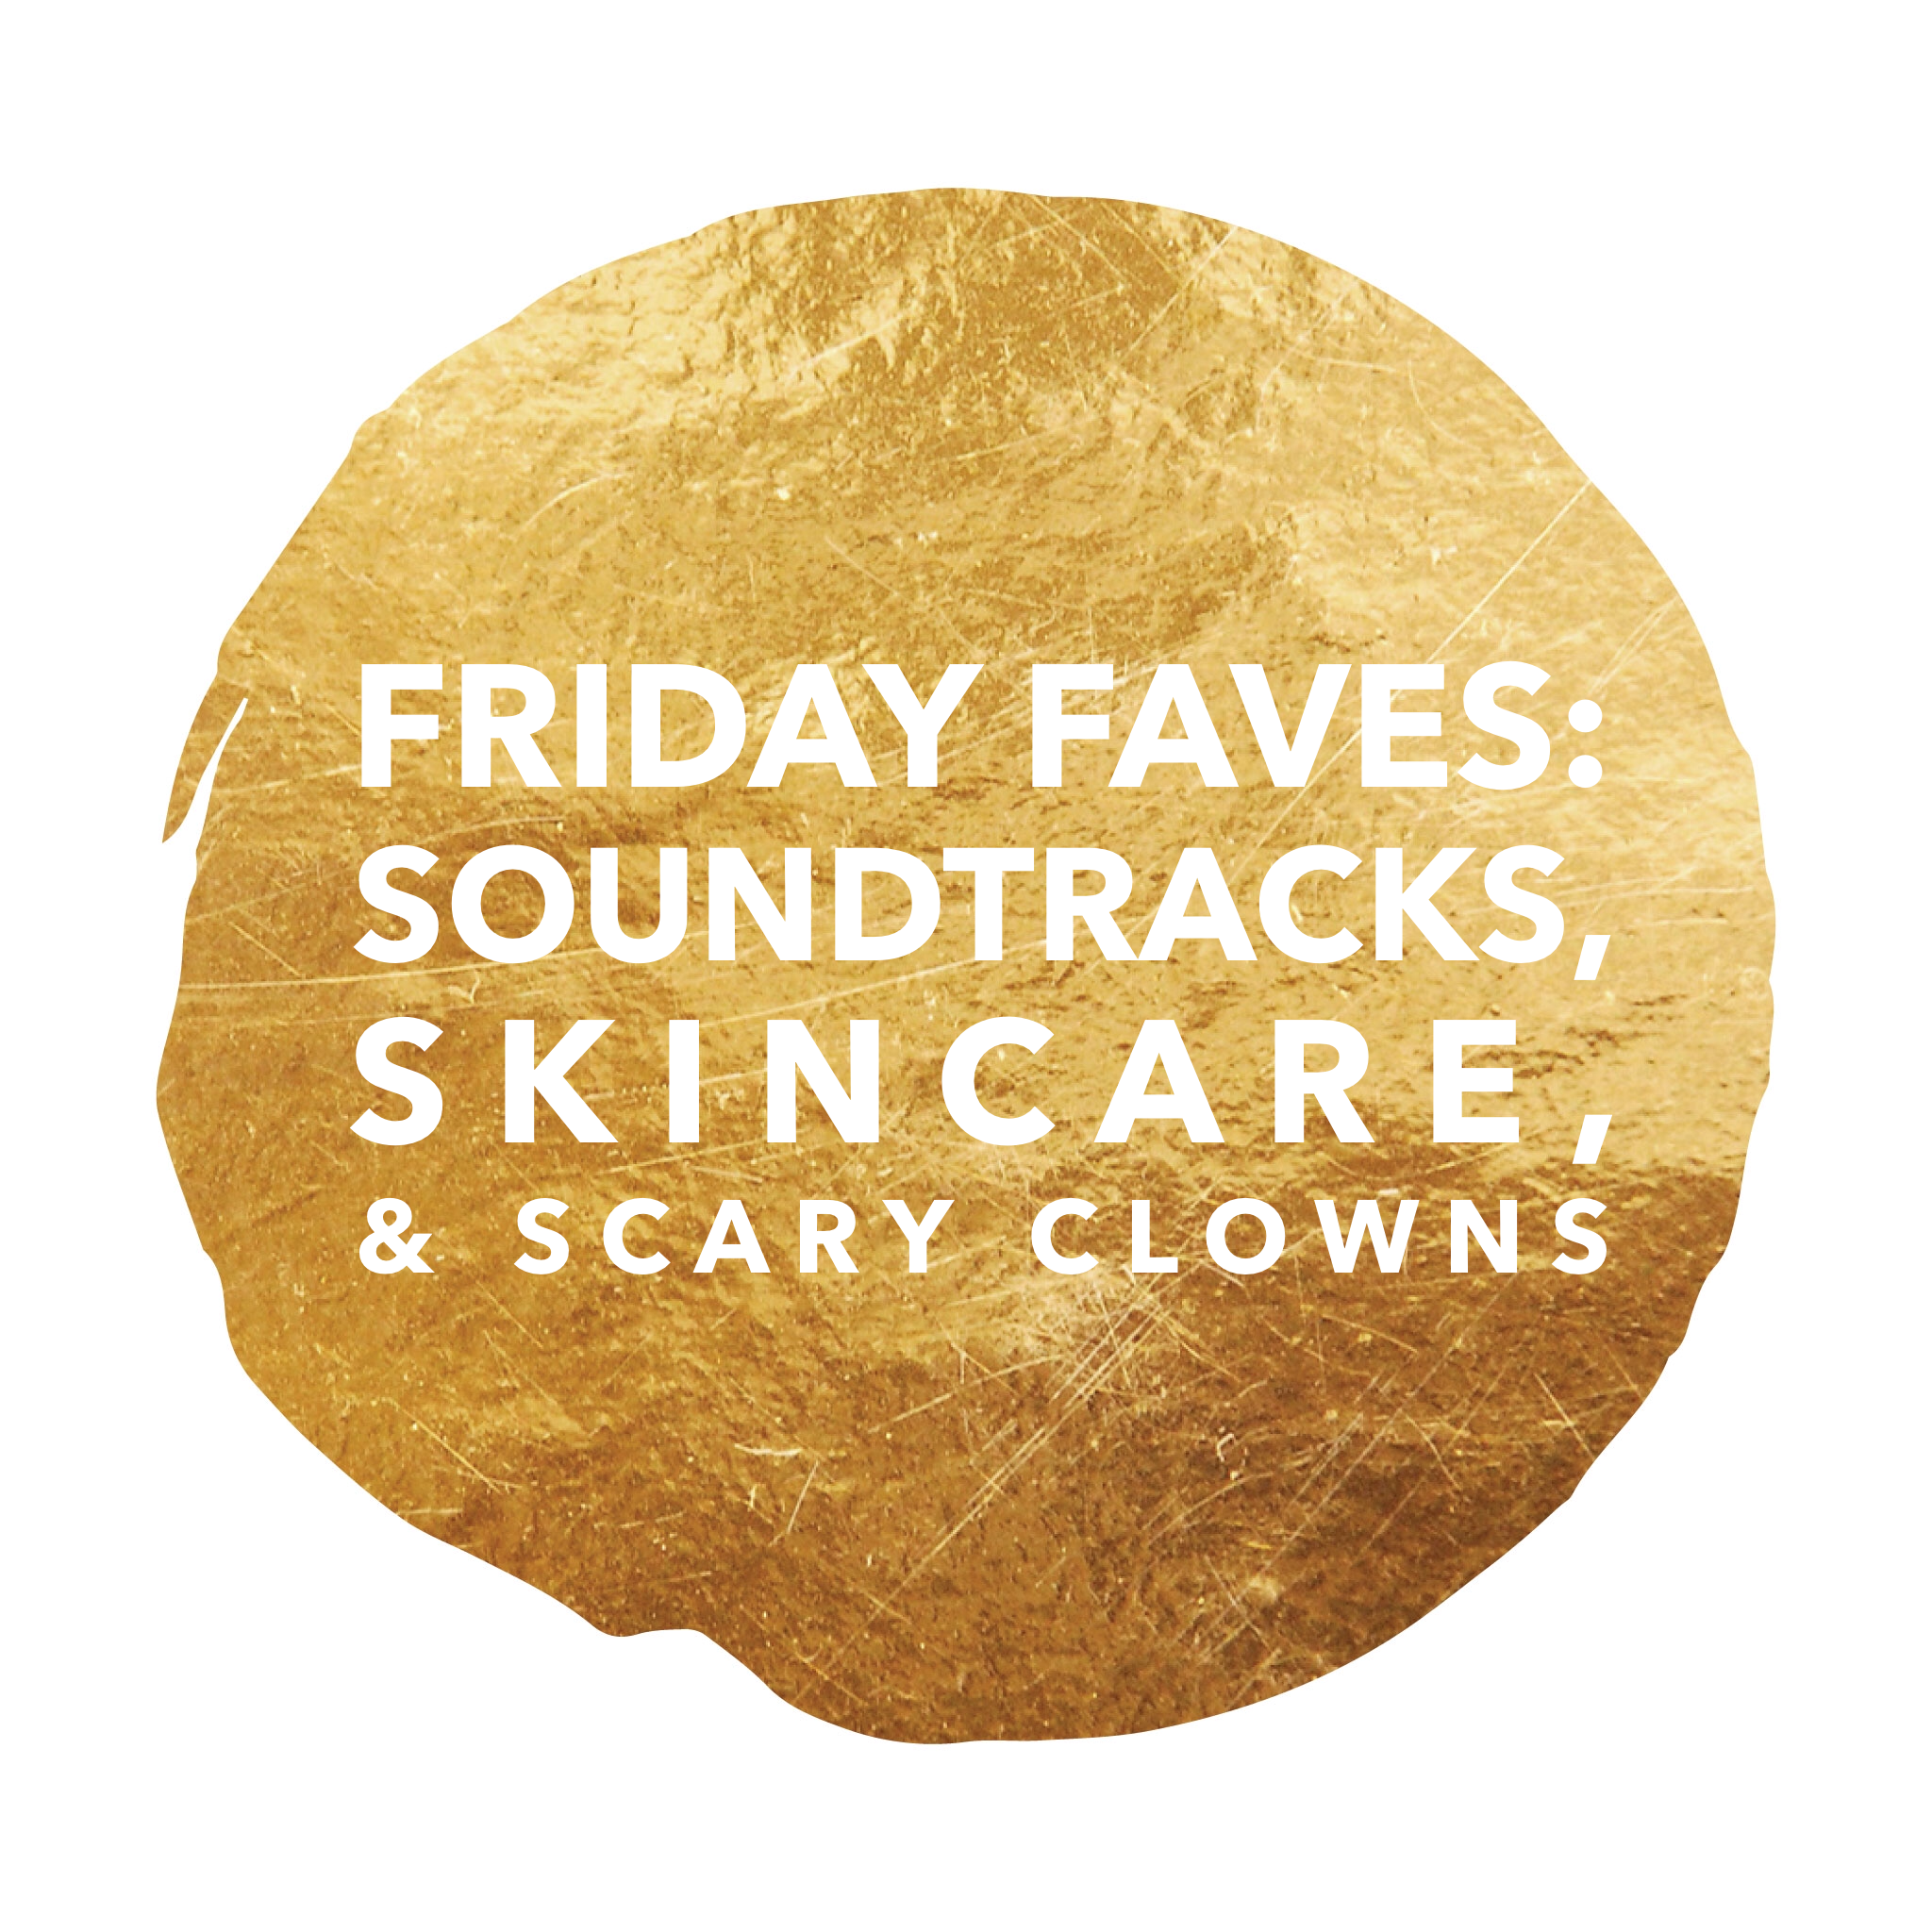 Friday Faves: Some incredible TV with mindblowing soundtracks, great skincare treats, and more...